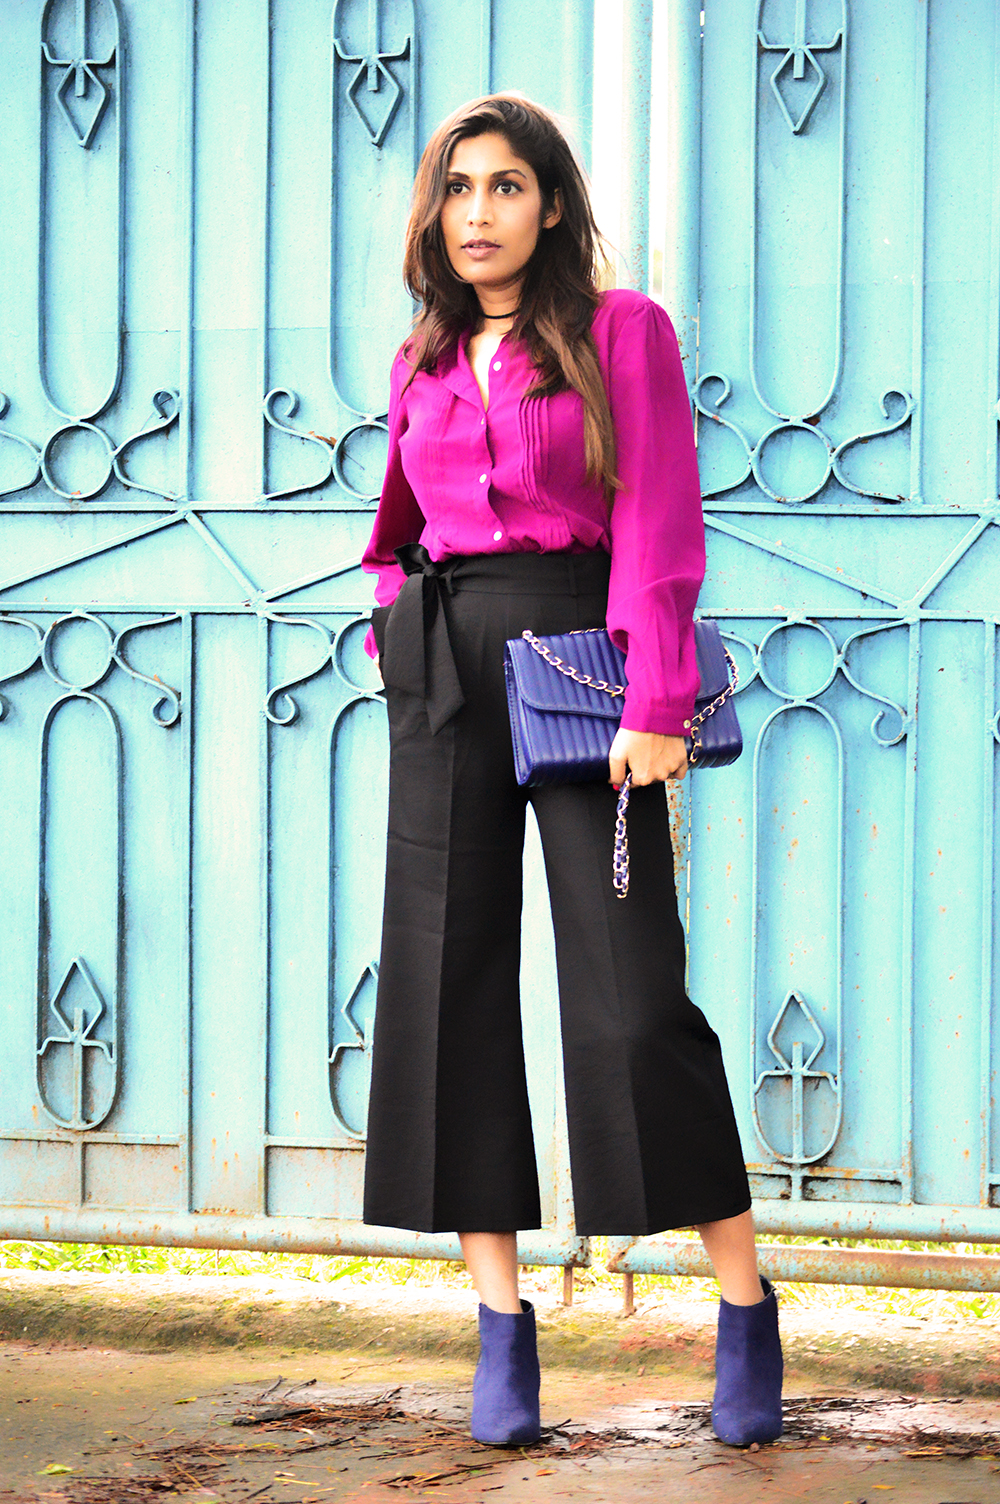 Fashion, Style, Style Over Coffee, Fashion Photography, Street Style, Indian Fashion Blogger, Black Culottes, Wine Coloured shirt, Autumn Hues, Winter Fashion, Fall Colors-3